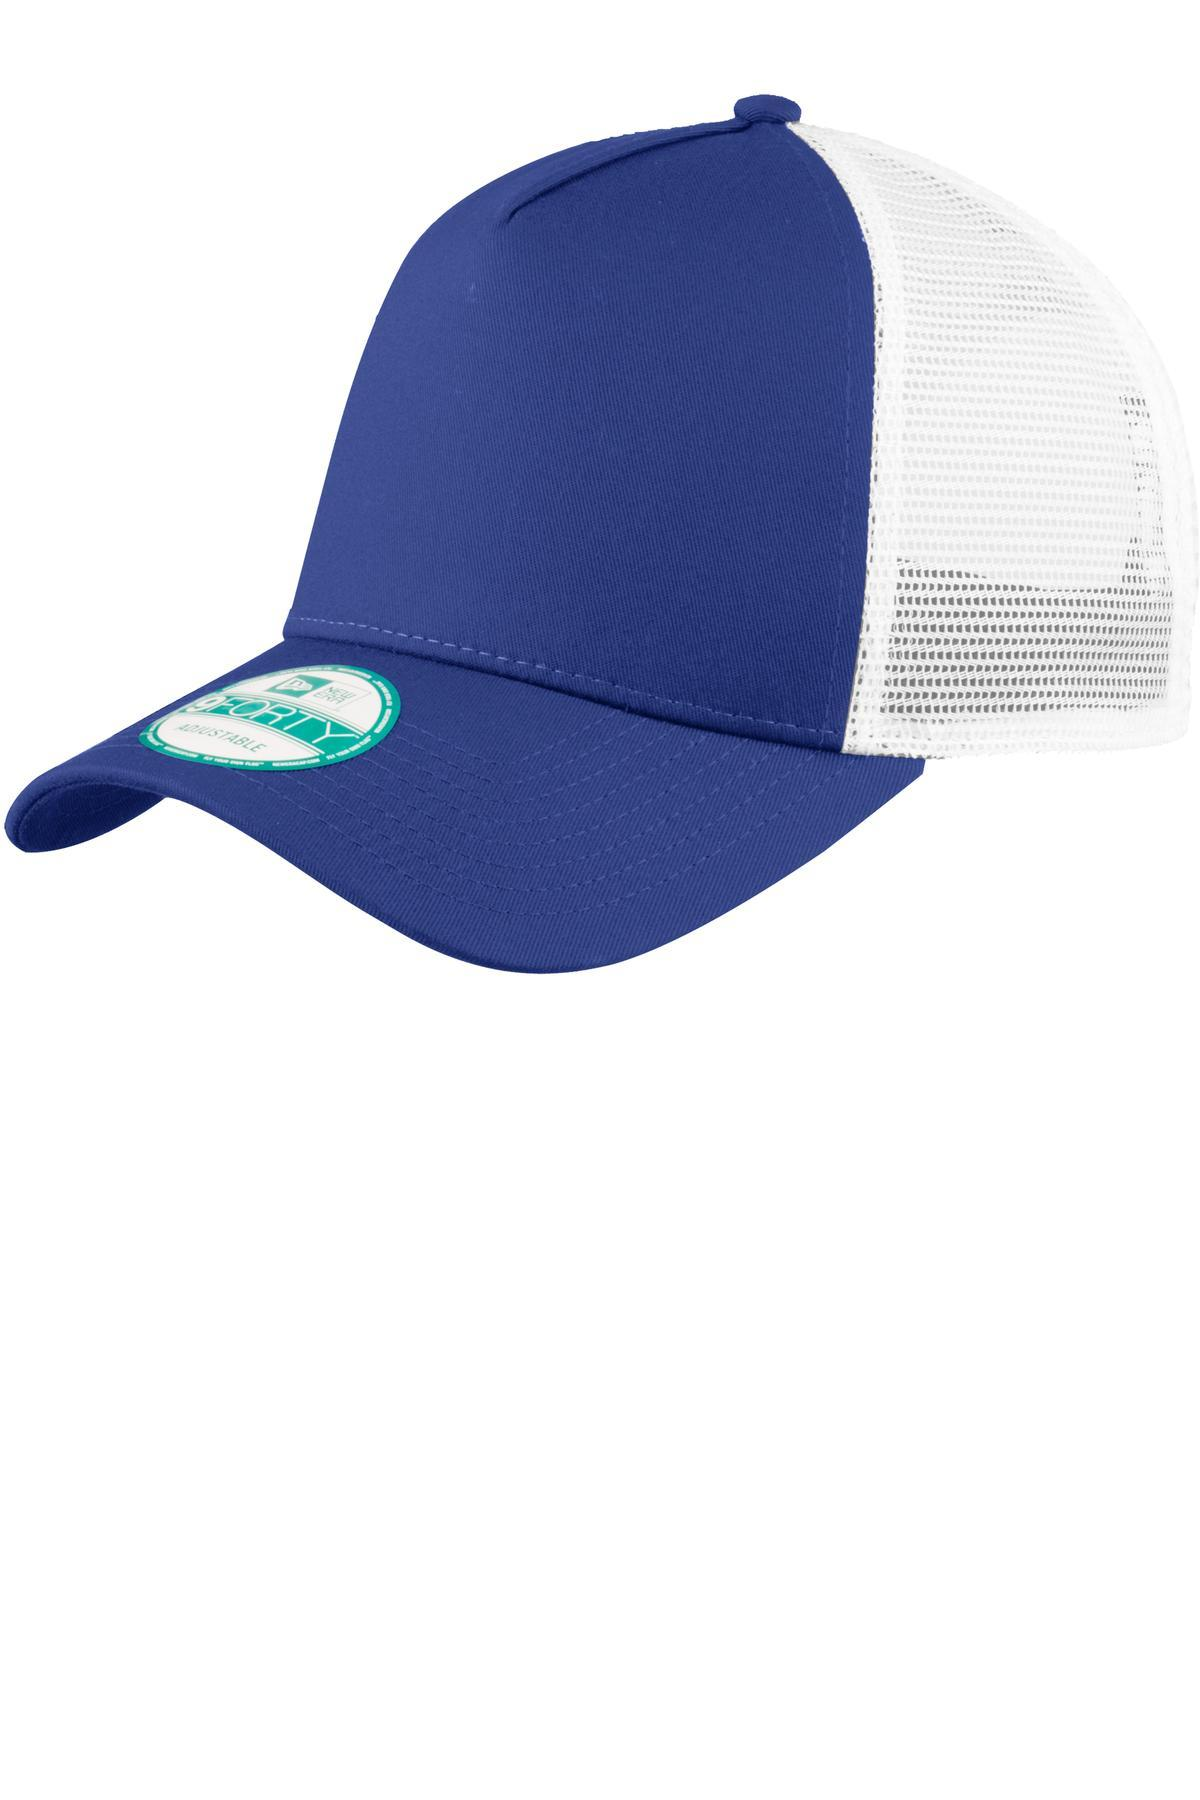 Royal/ White - New Era NE205